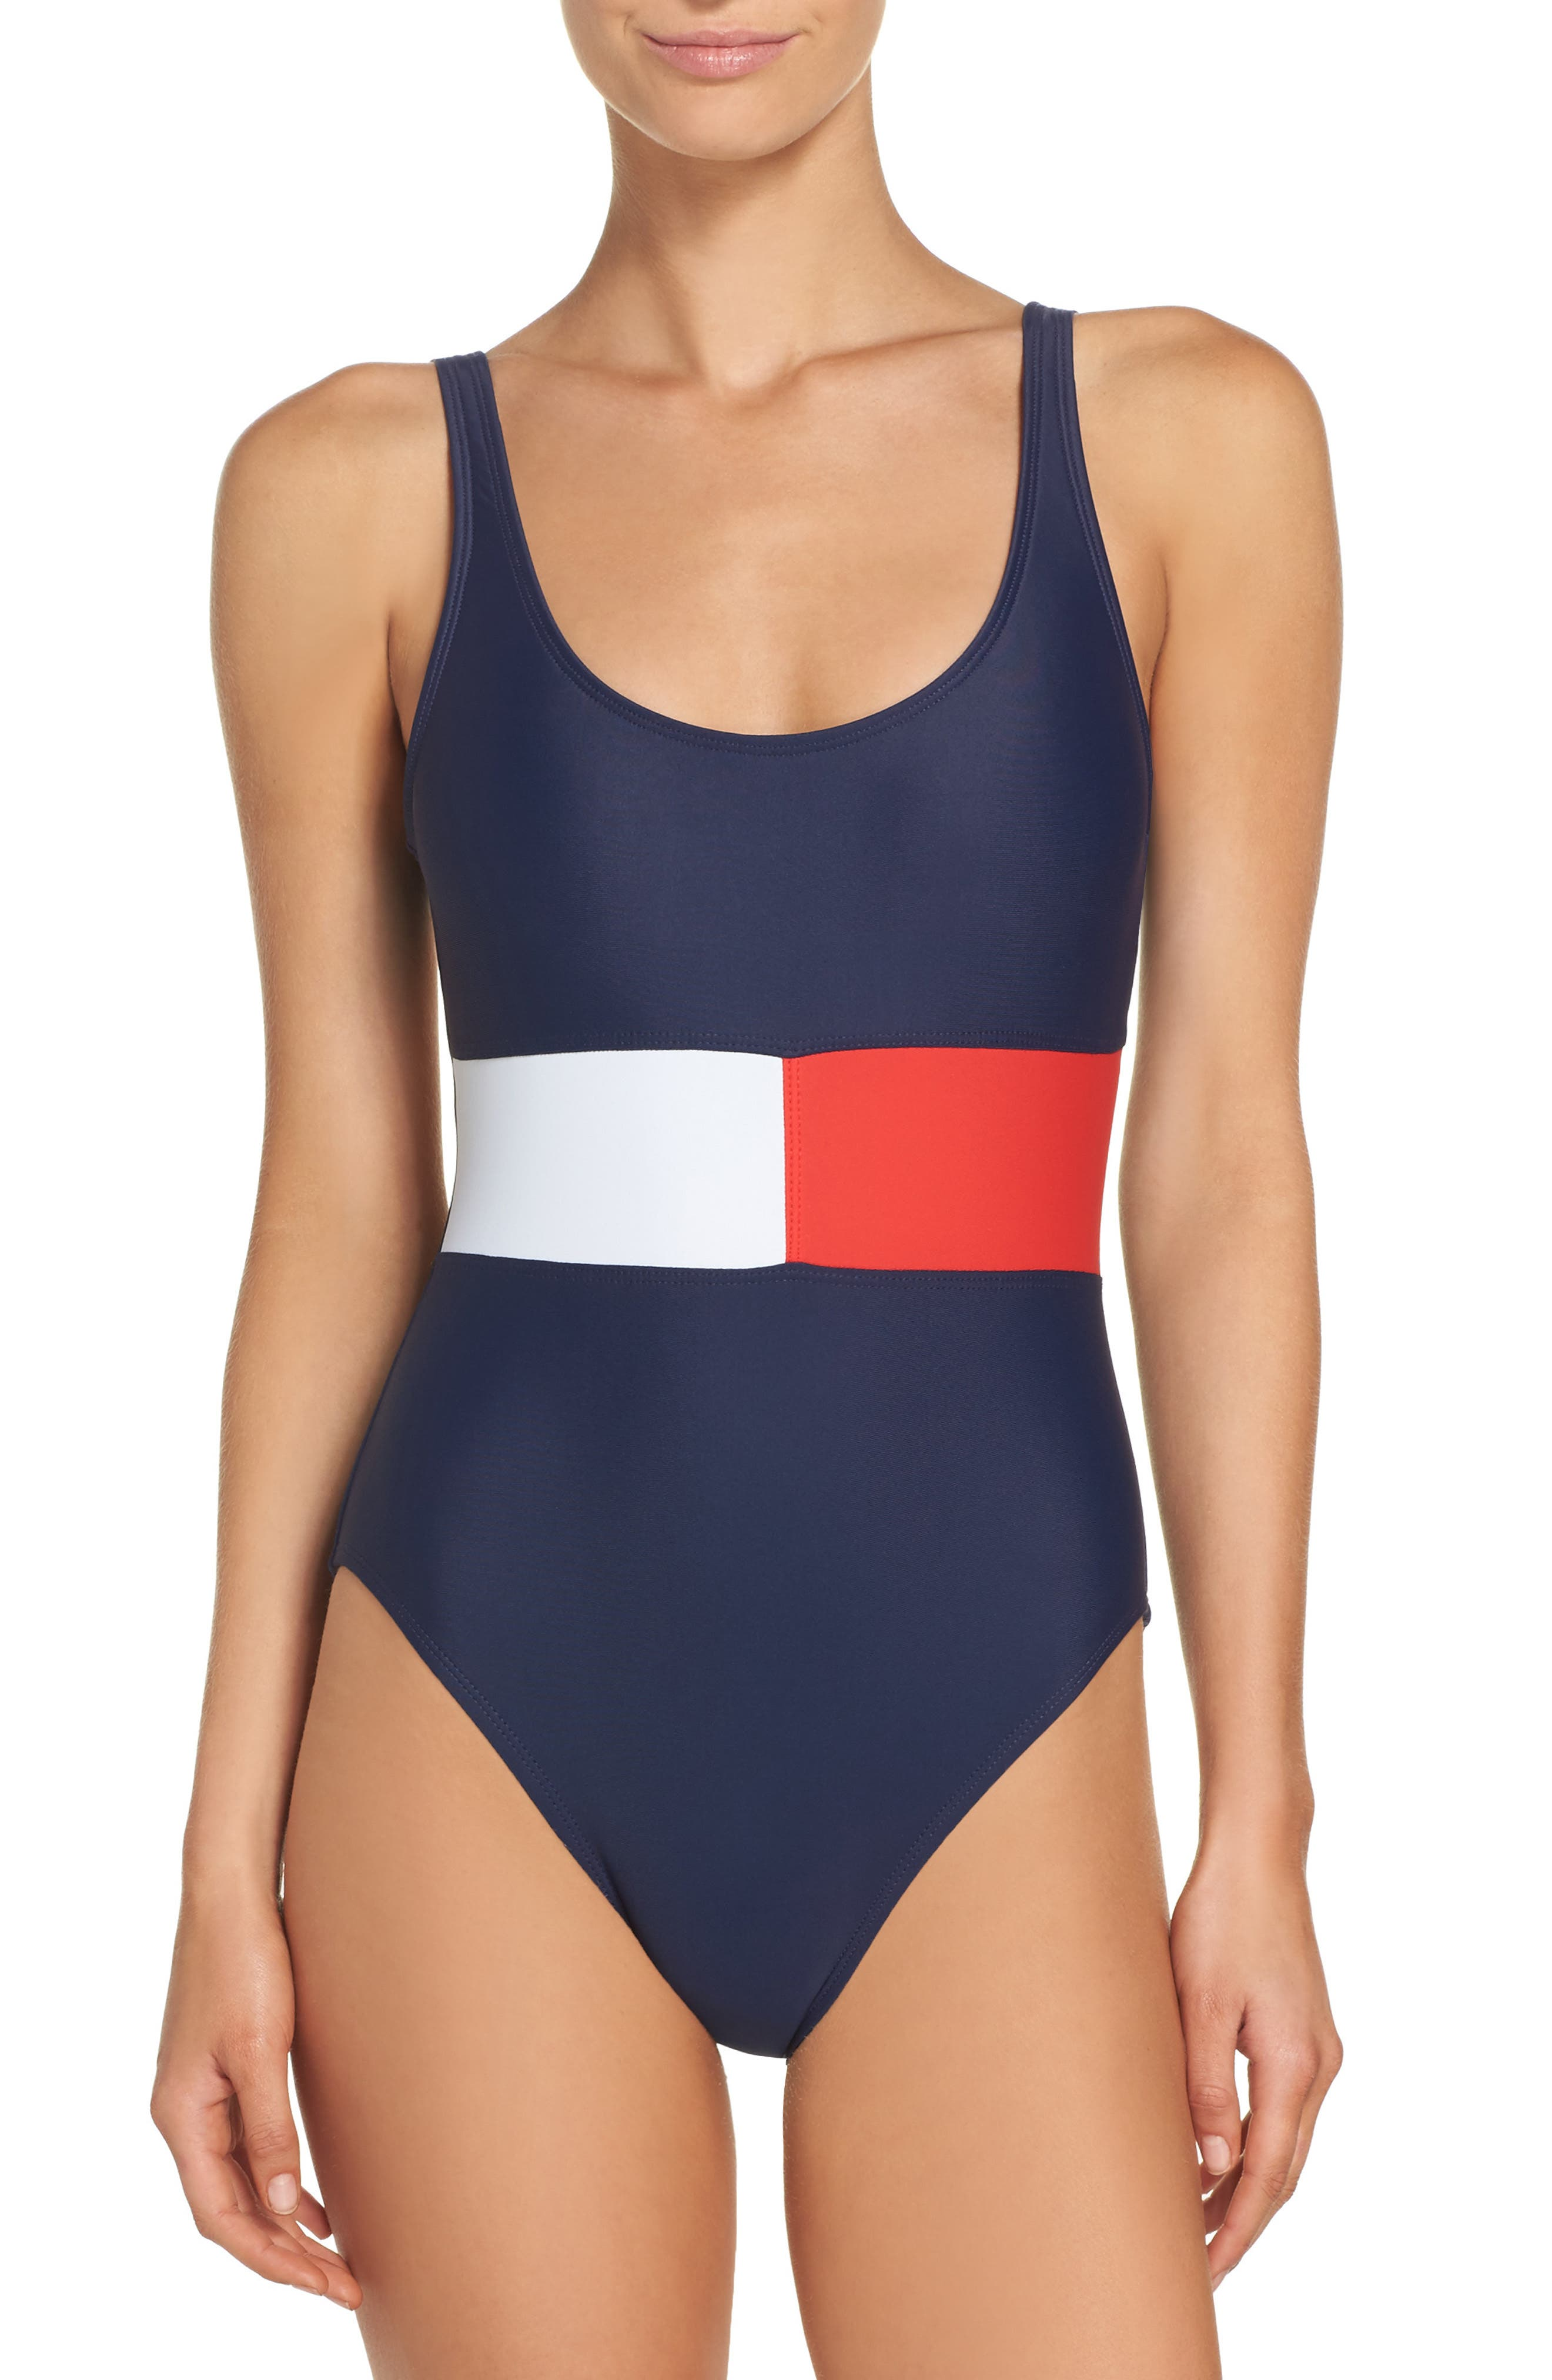 Flag One-Piece Swimsuit,                             Main thumbnail 1, color,                             400